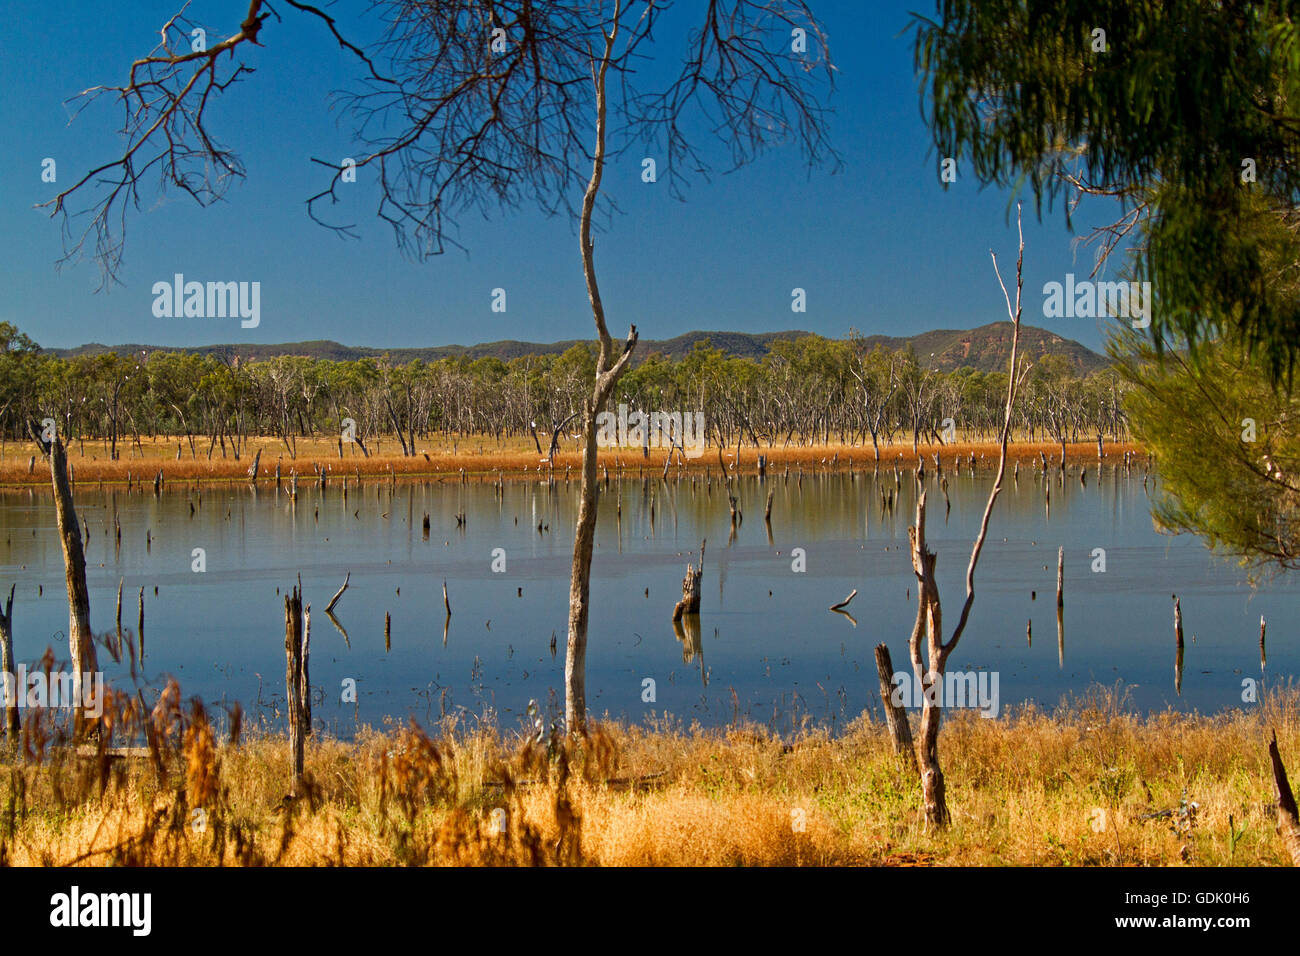 Vast calm blue waters of Lake Nuga Nuga with rugged Carnarvon ranges on horizon under blue sky in outback Qld Australia Stock Photo